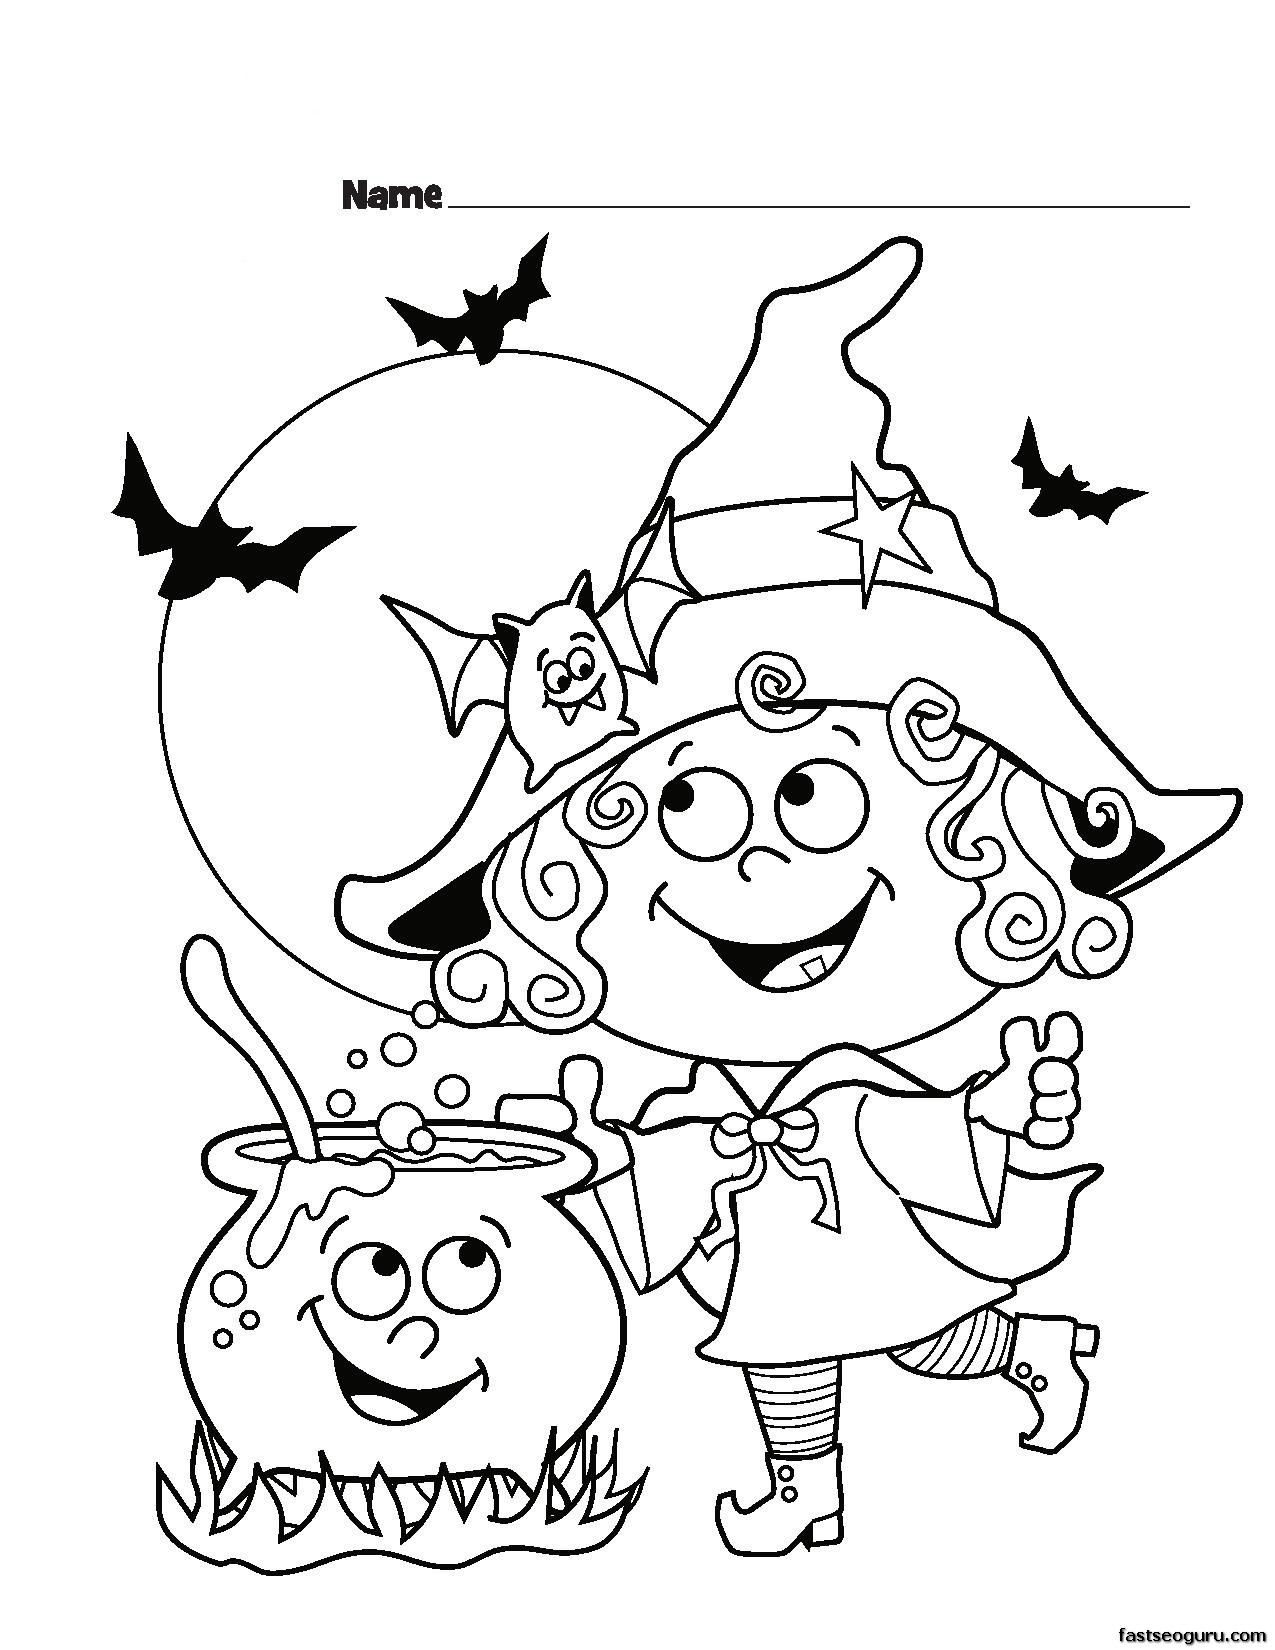 scary witch drawing at getdrawings com free for personal use scary